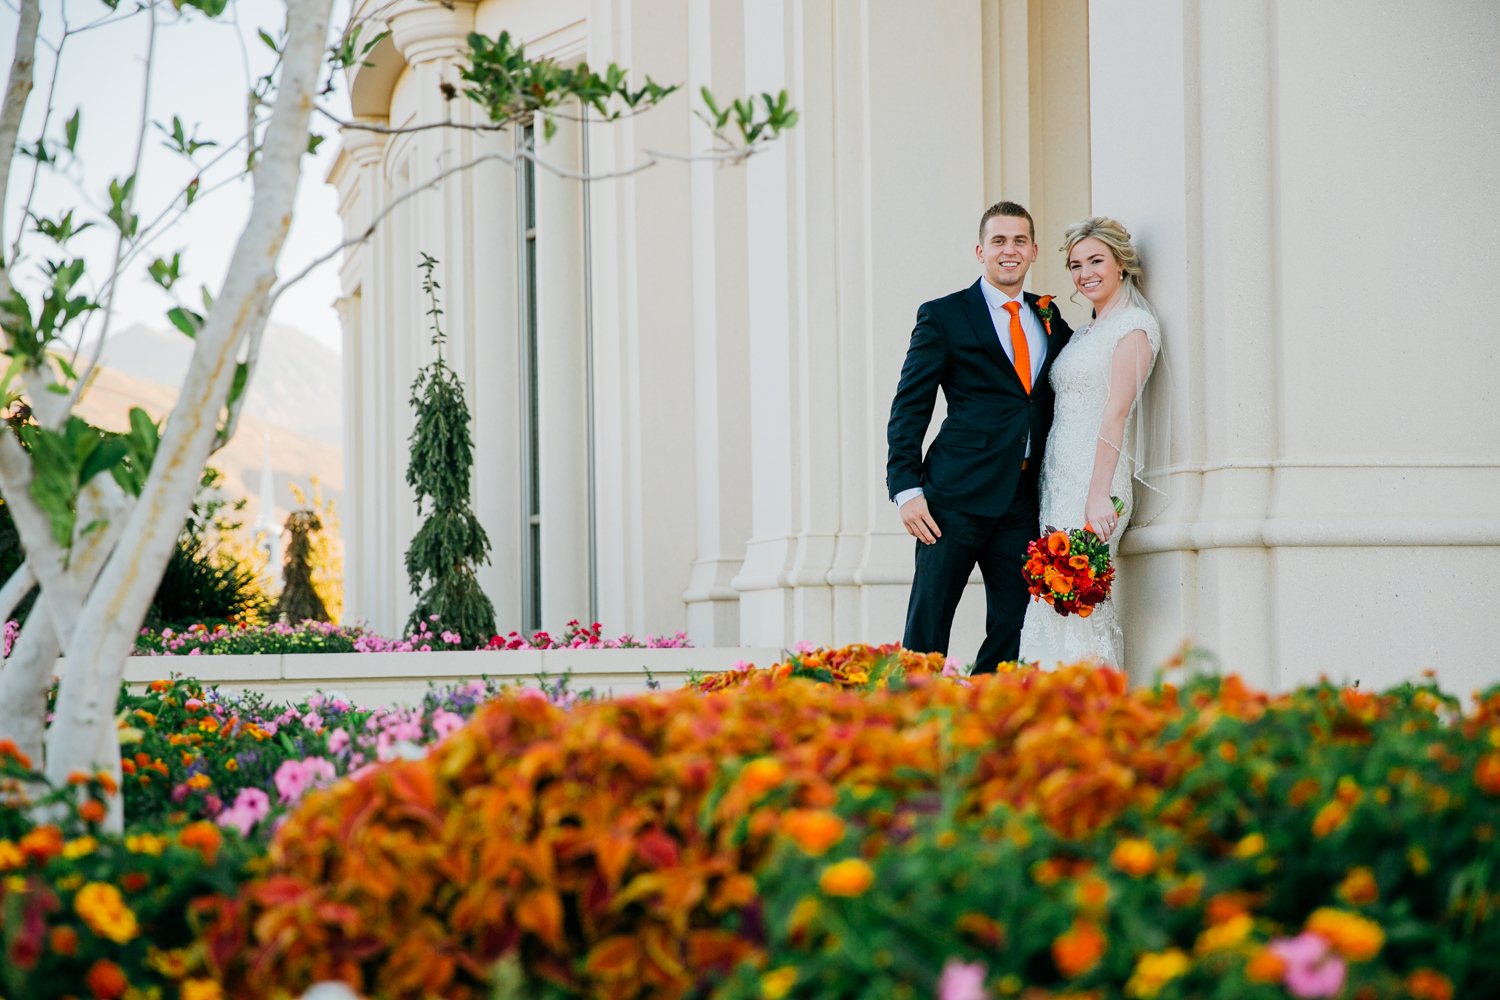 payson-temple-bridals-utah-wedding-photographer-40.jpg